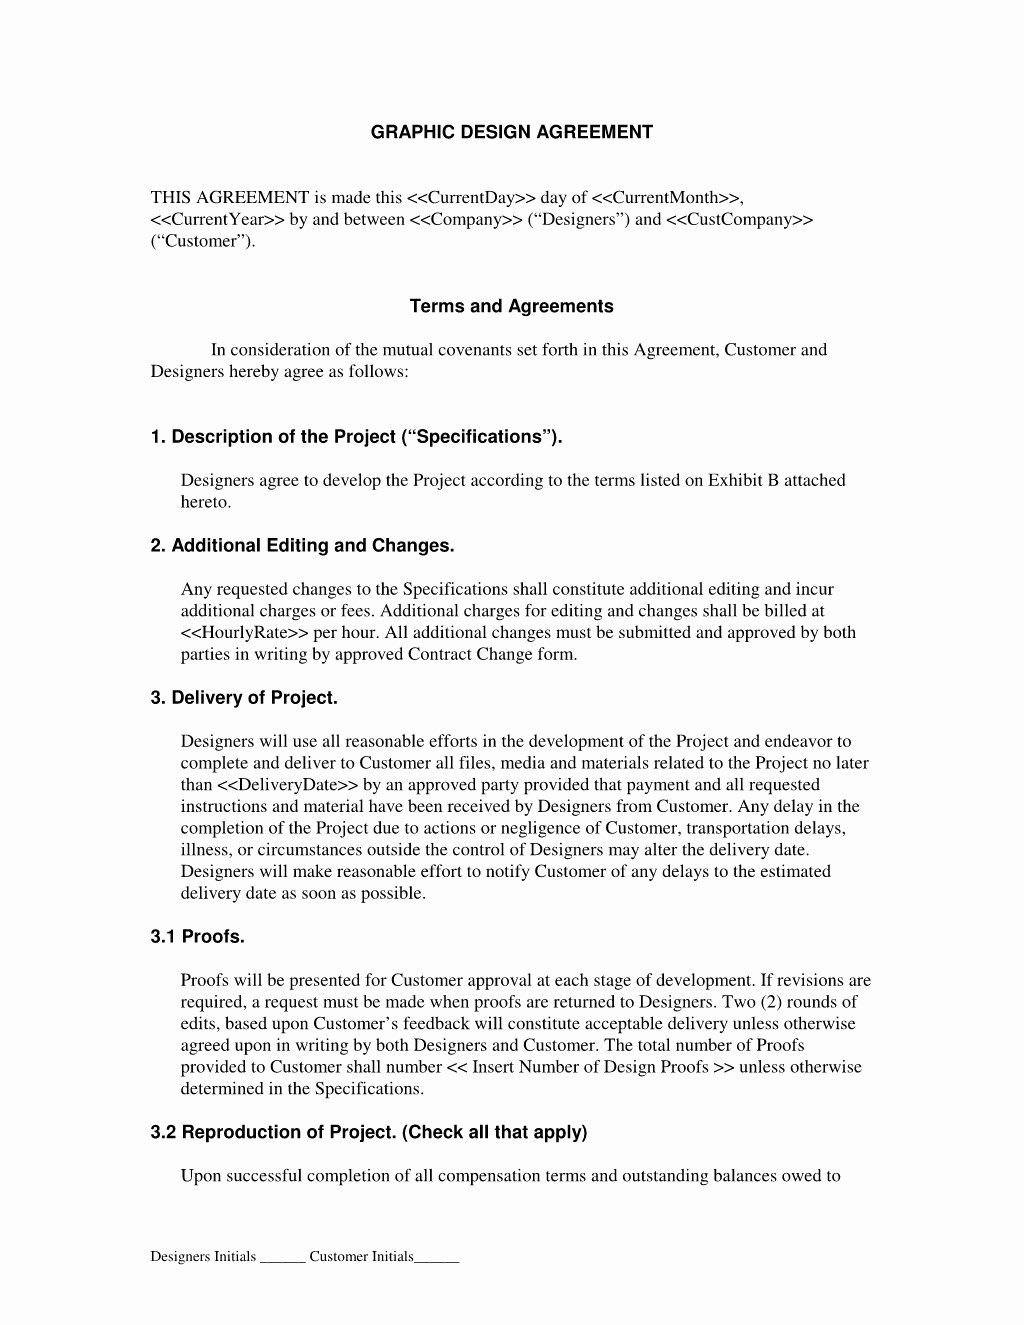 graphic design contract agreement 2